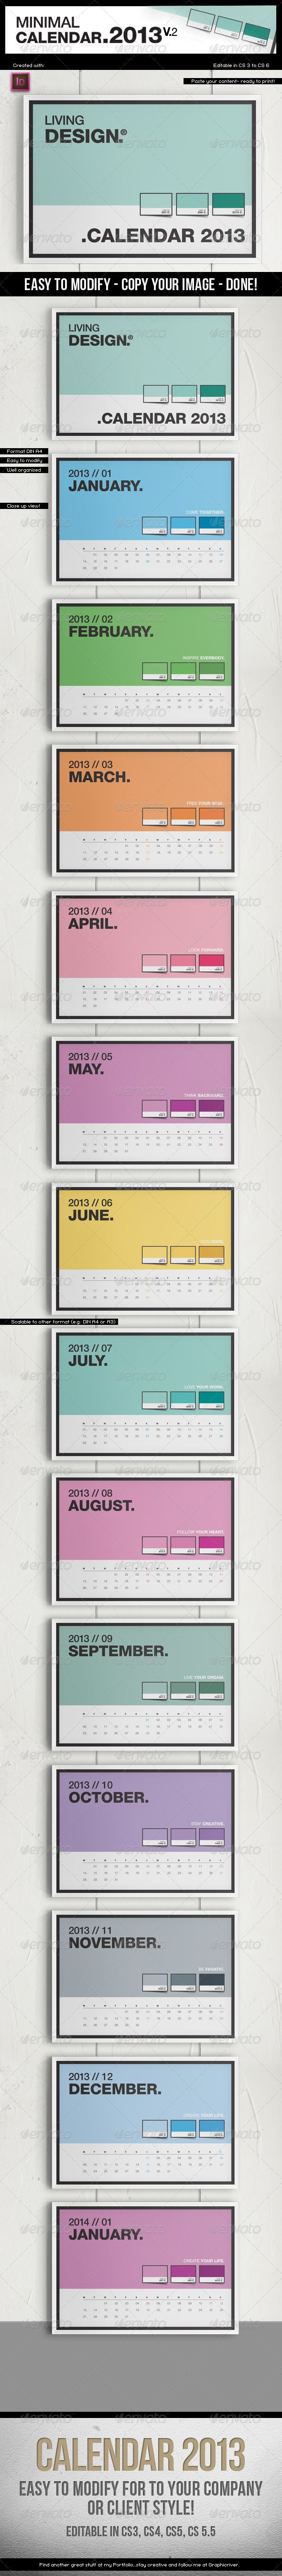 Calendar 2013 v2 // A4 Template // Pantone ® Style Get the source files for download: http://graphicriver.net/item/calendar-2013-v2-a4-template-pantone-style/3243544